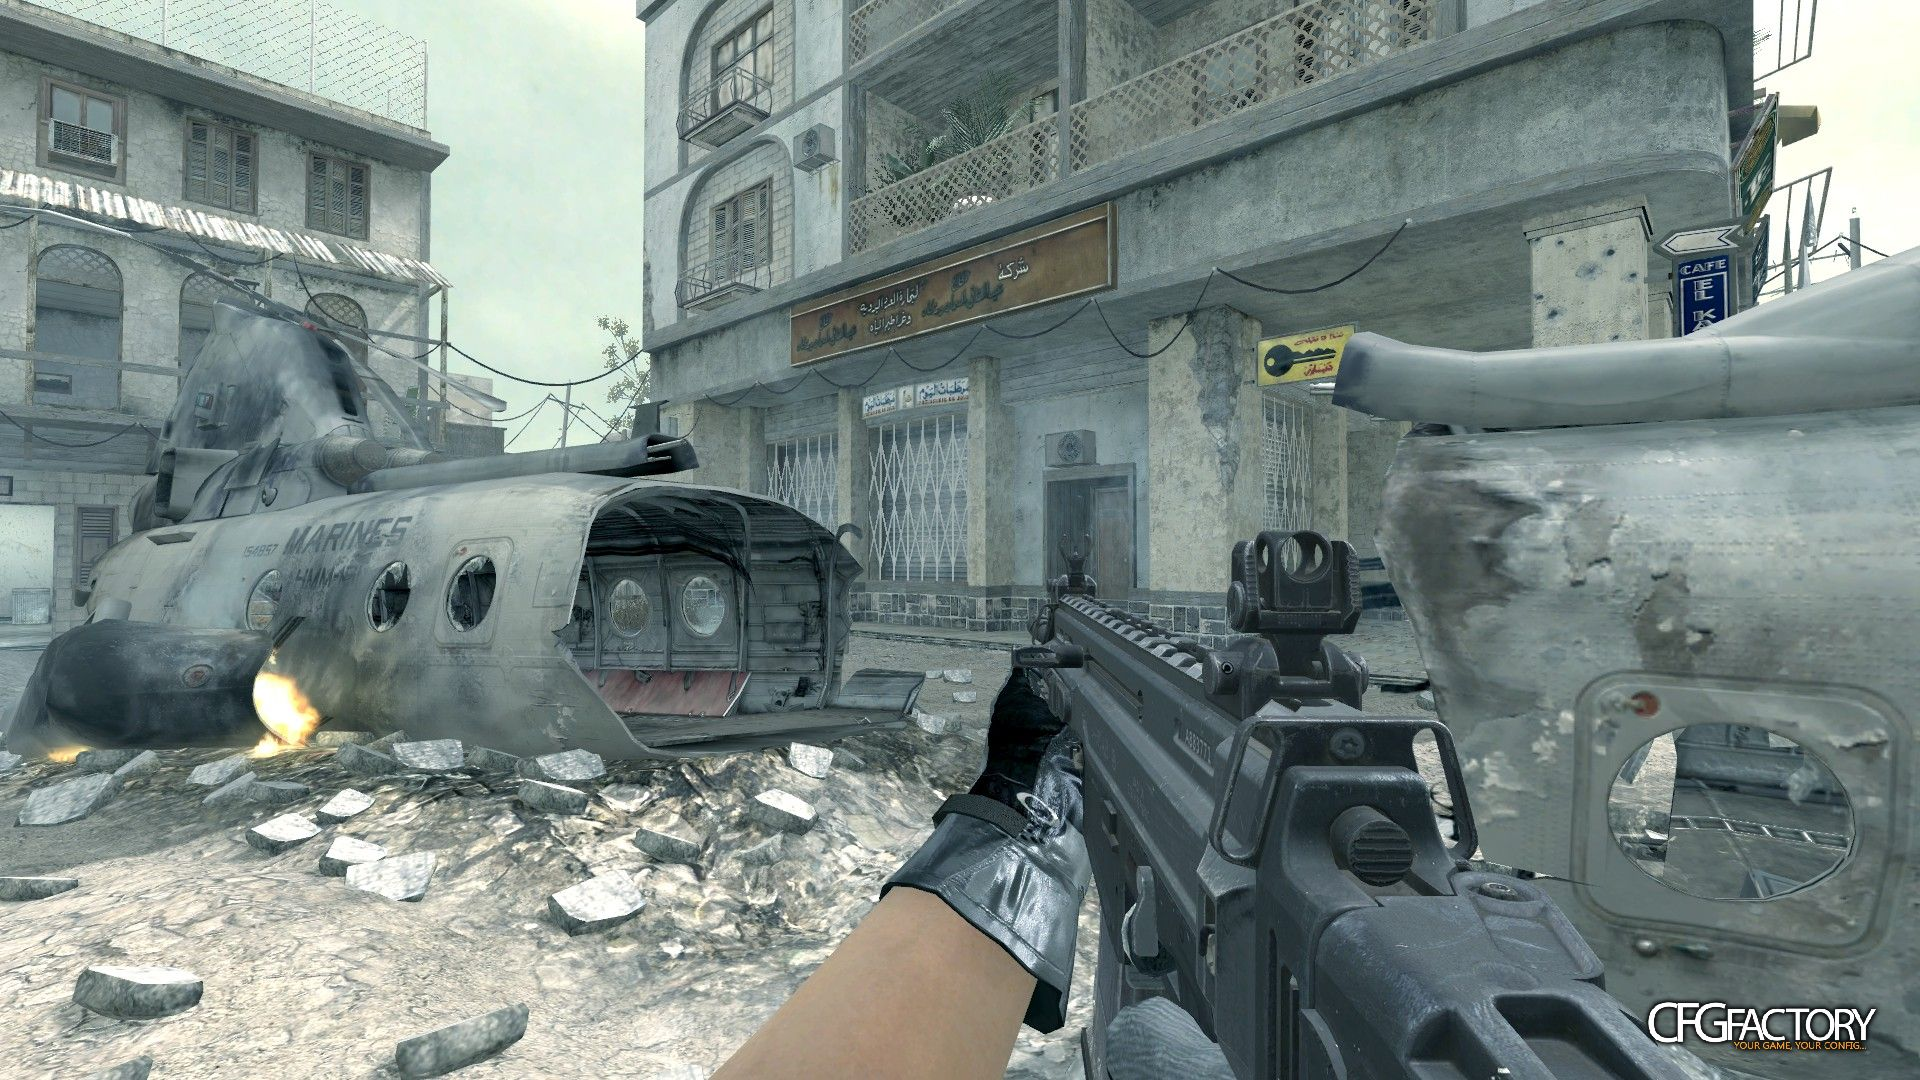 cod4, custom models, ghosts cz-805, convictiondr